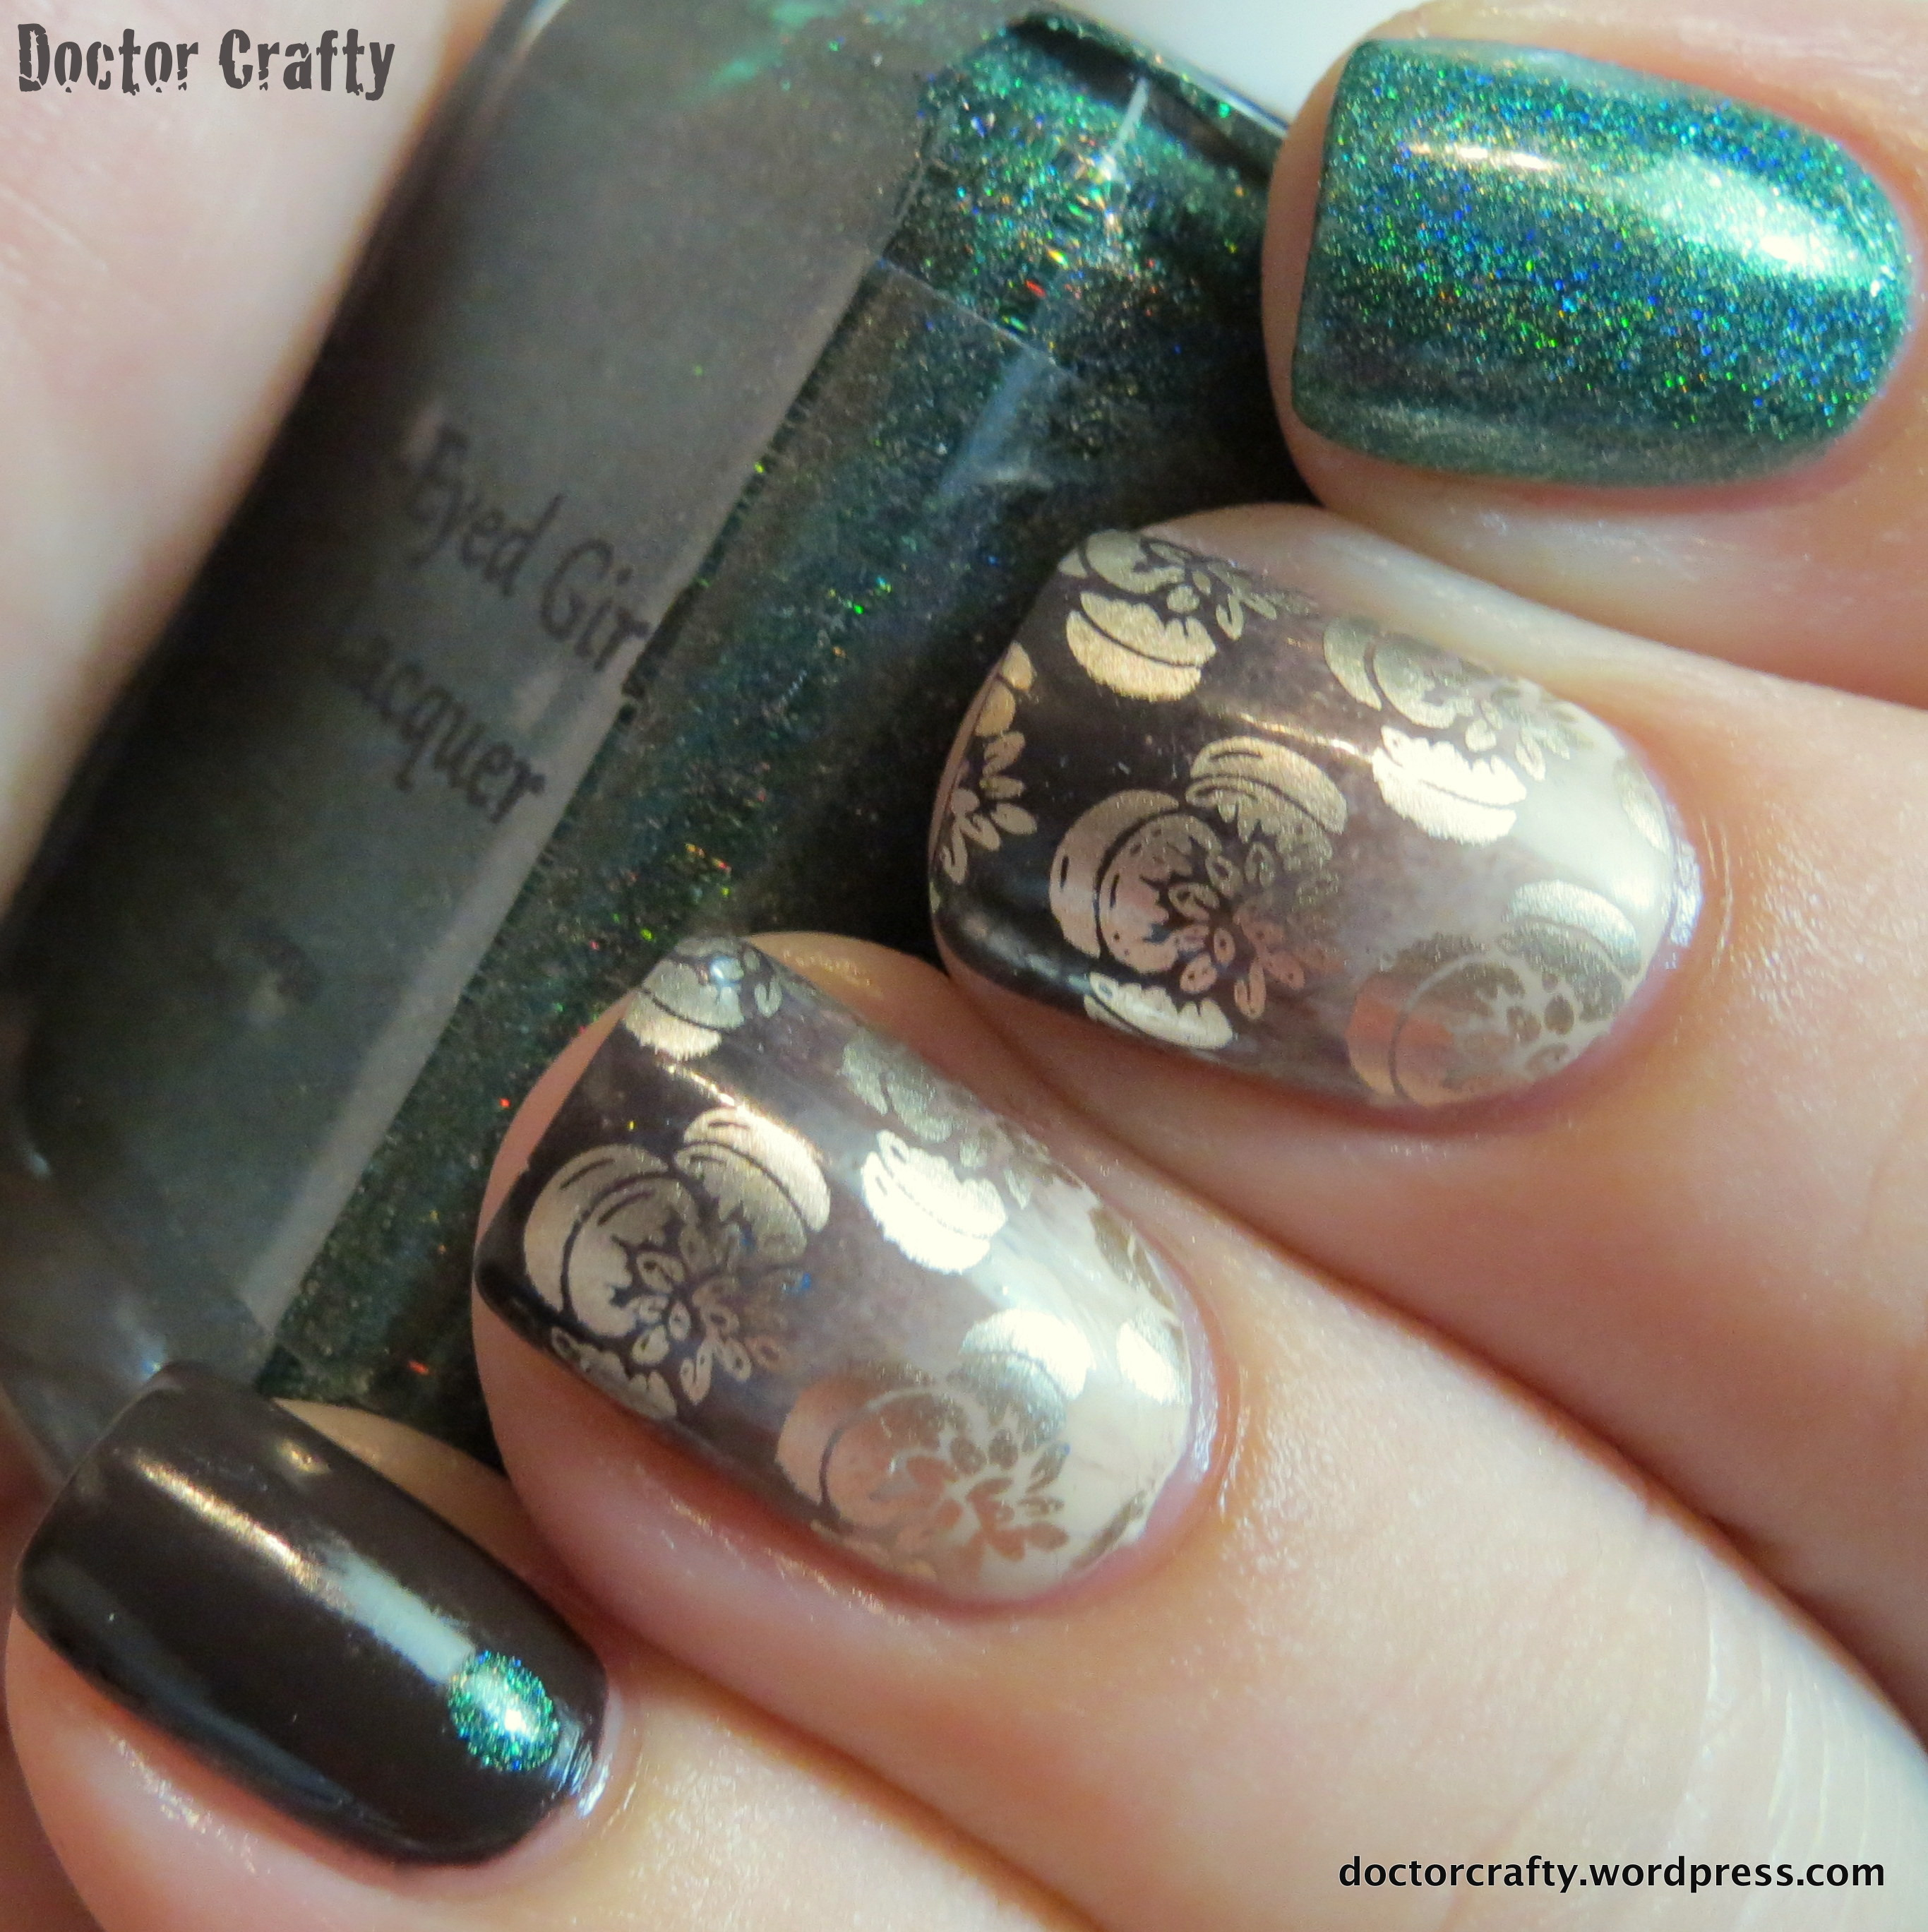 doctor who nail polish | Doctor Crafty